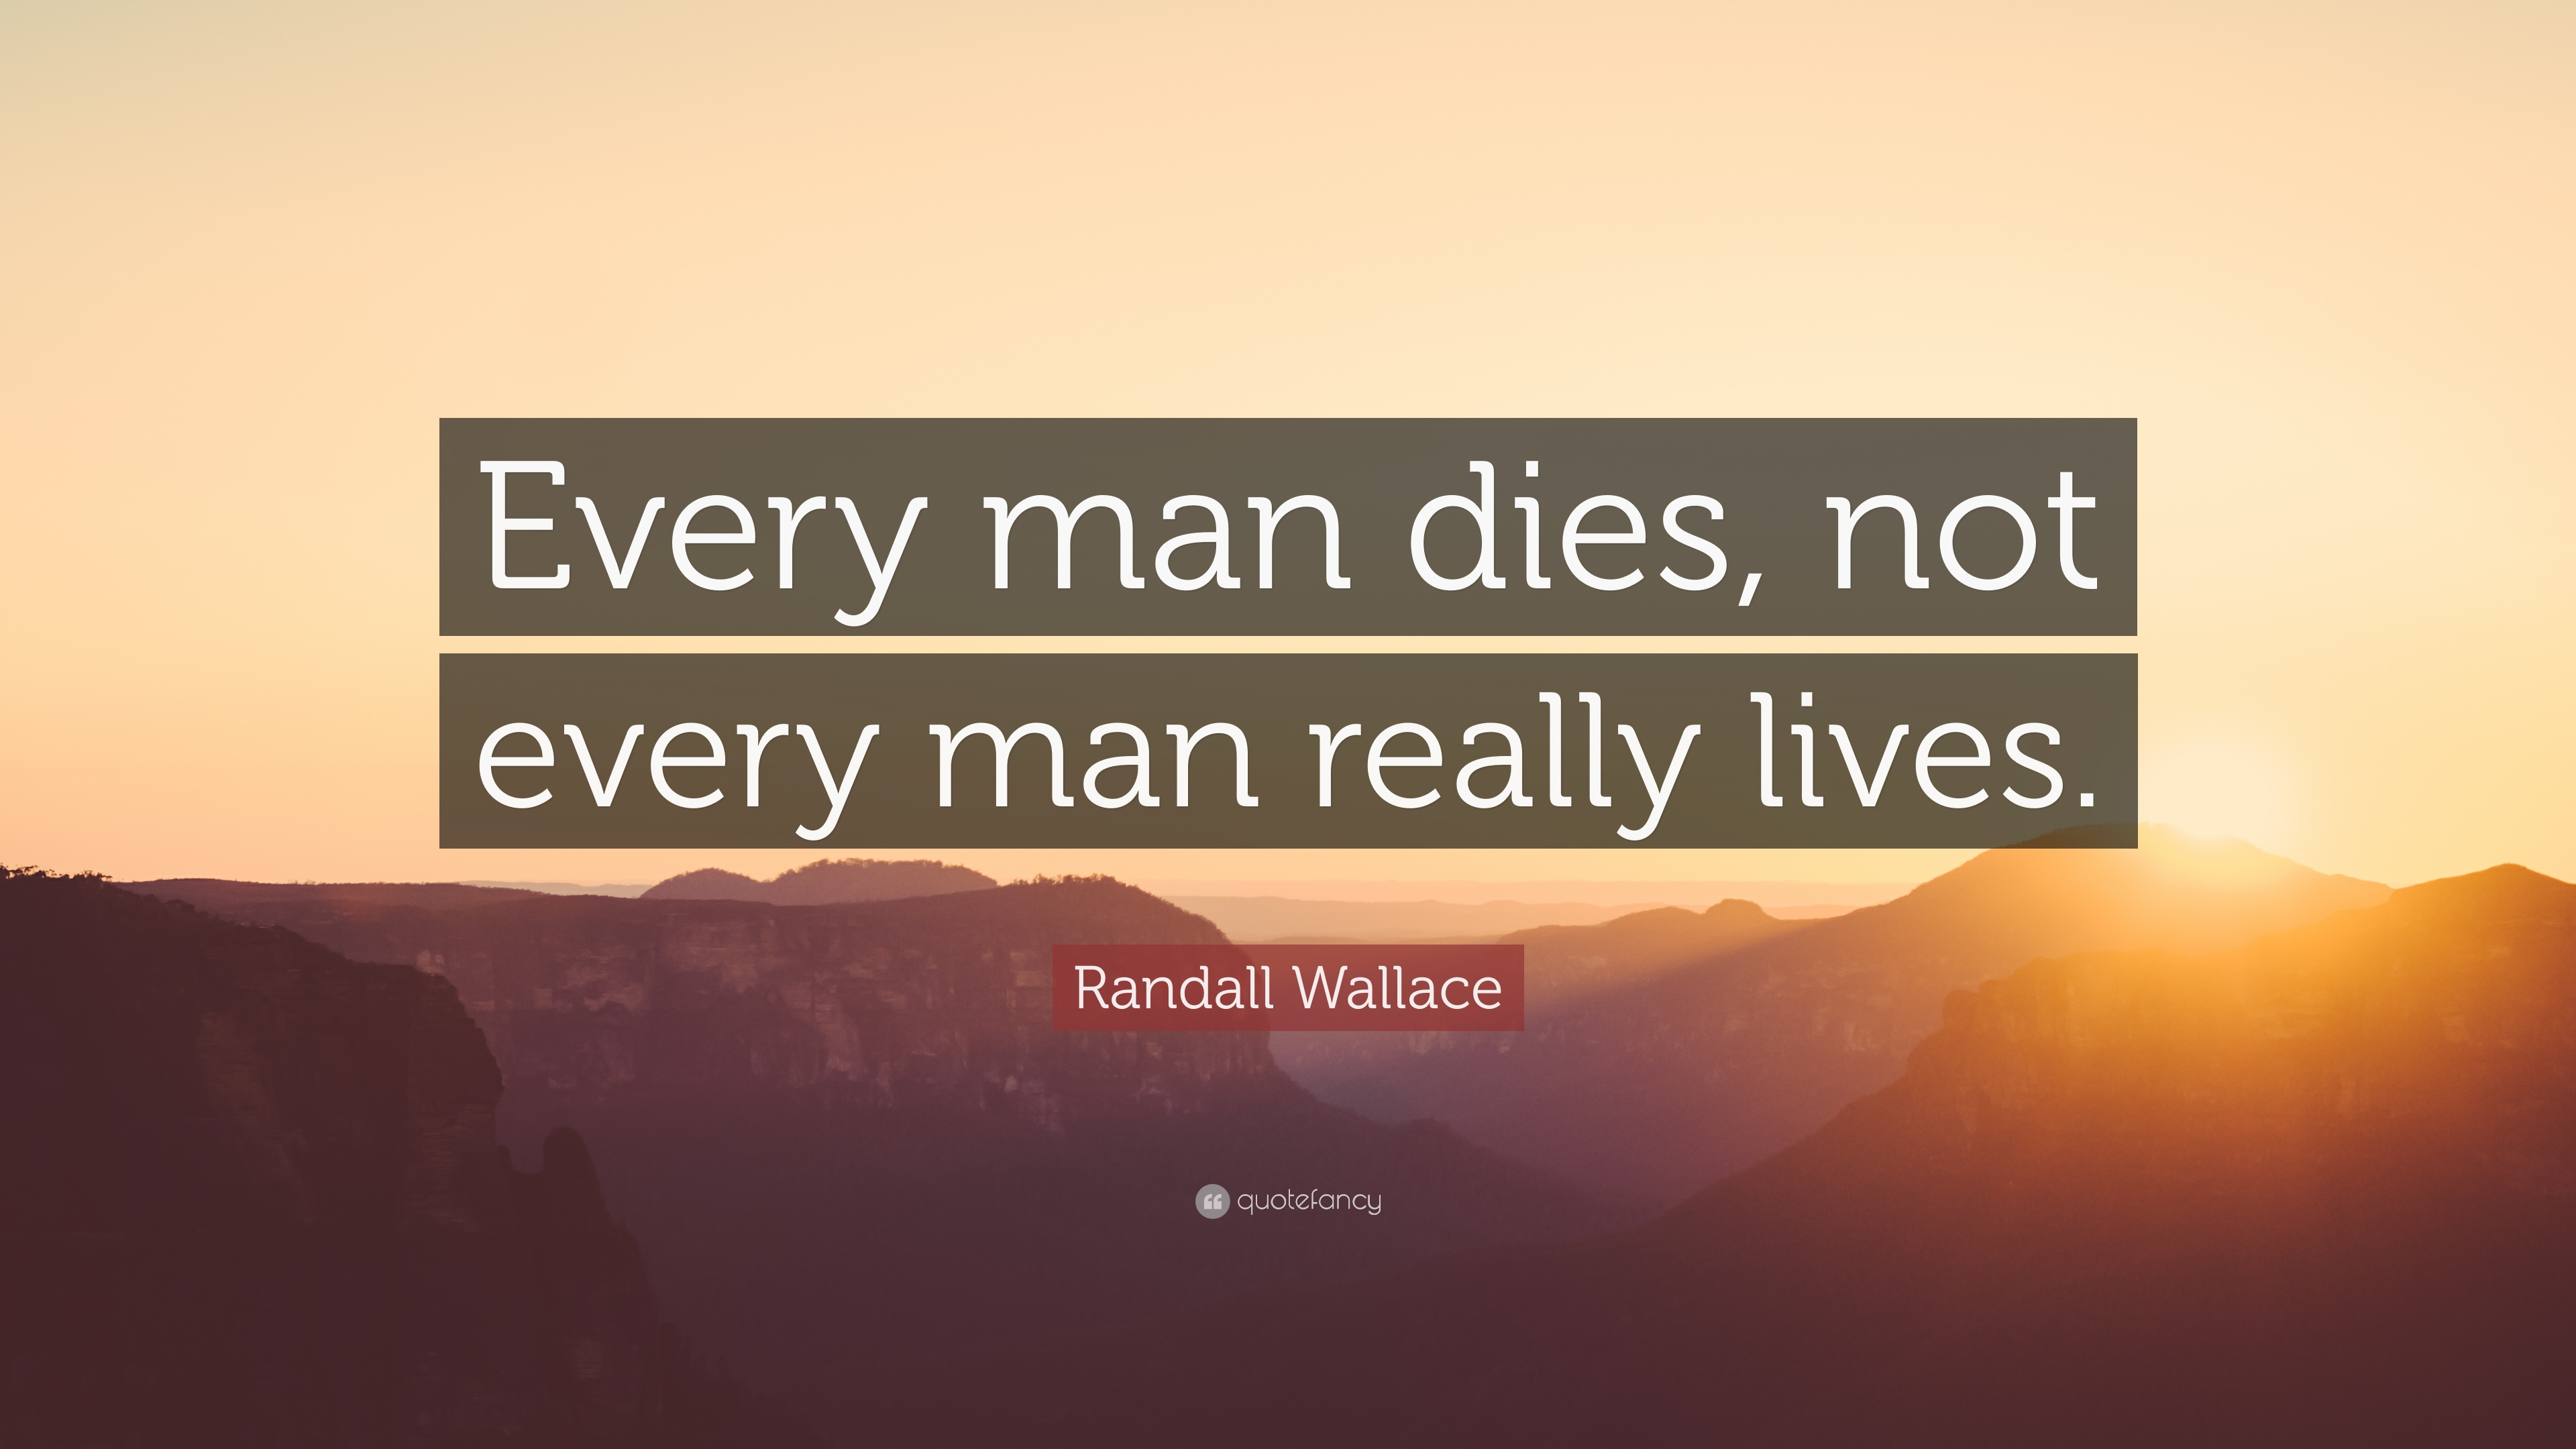 Randall Wallace Quotes (5 wallpapers) - Quotefancy